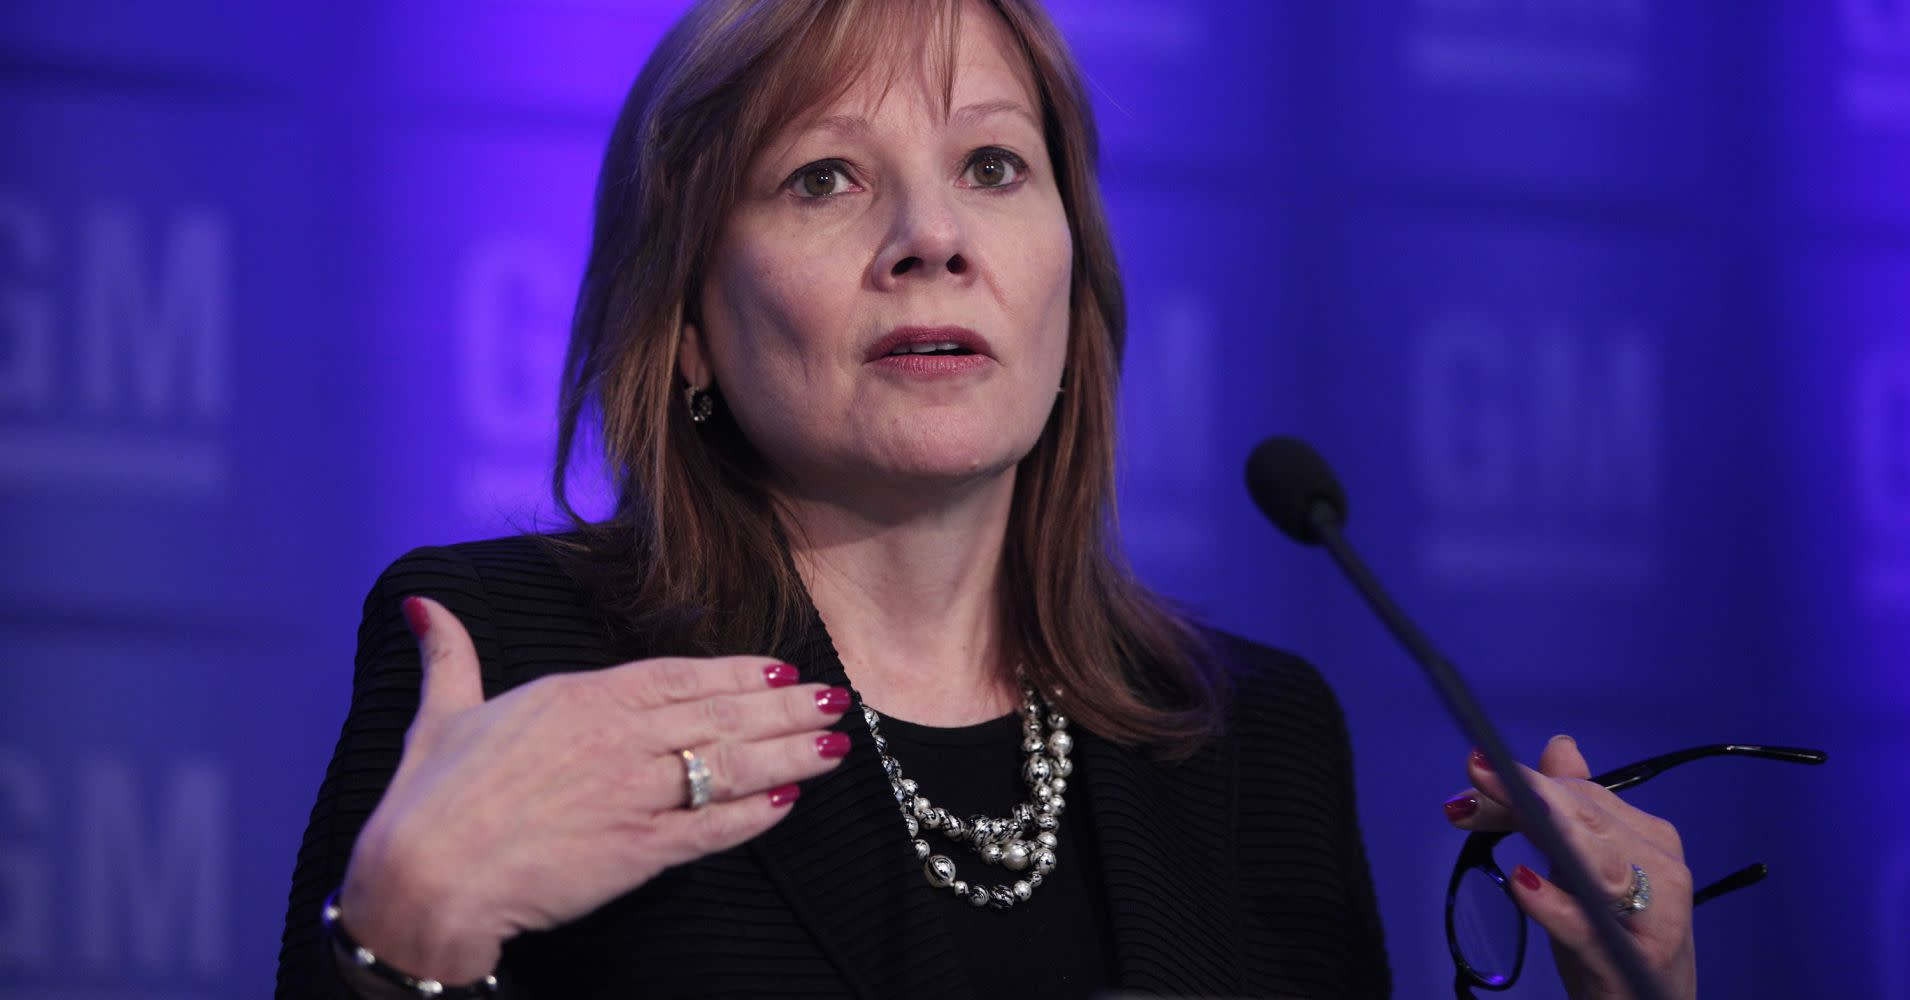 Here's the buyout GM offered before announcing 14,000 job cuts